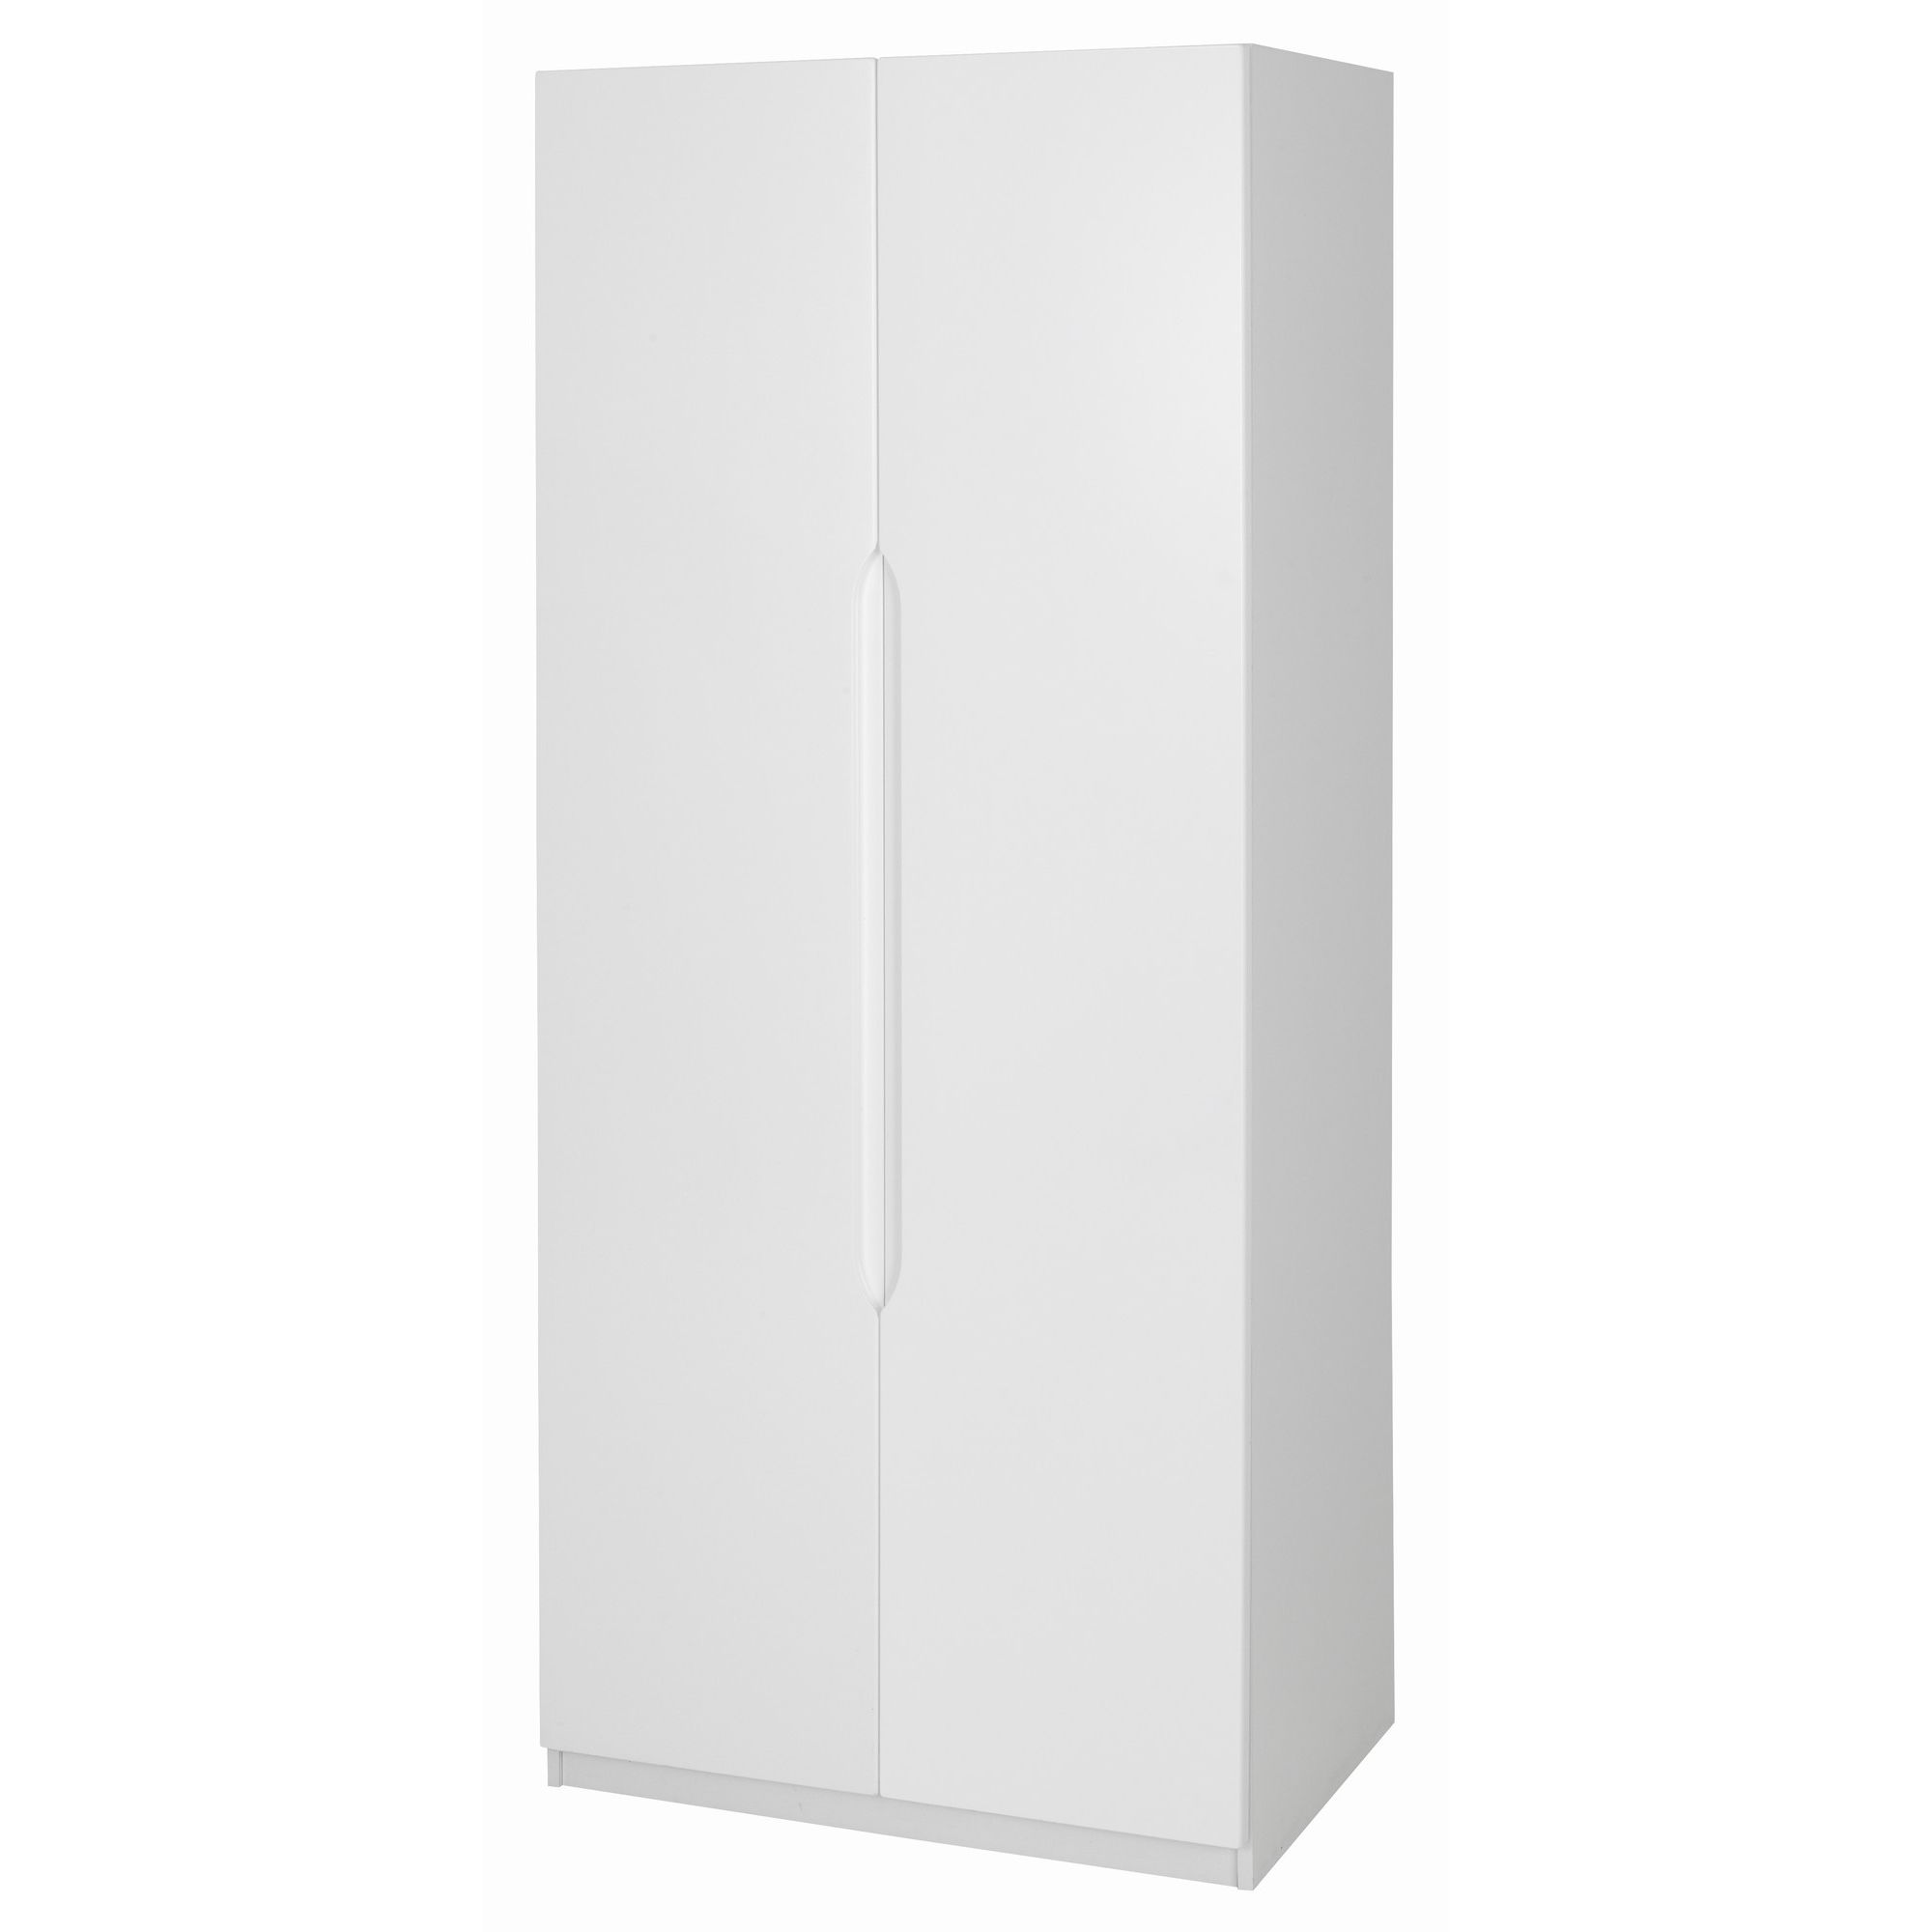 Alto Furniture Visualise Alpine 2 Door Wardrobe - High Gloss White at Tesco Direct